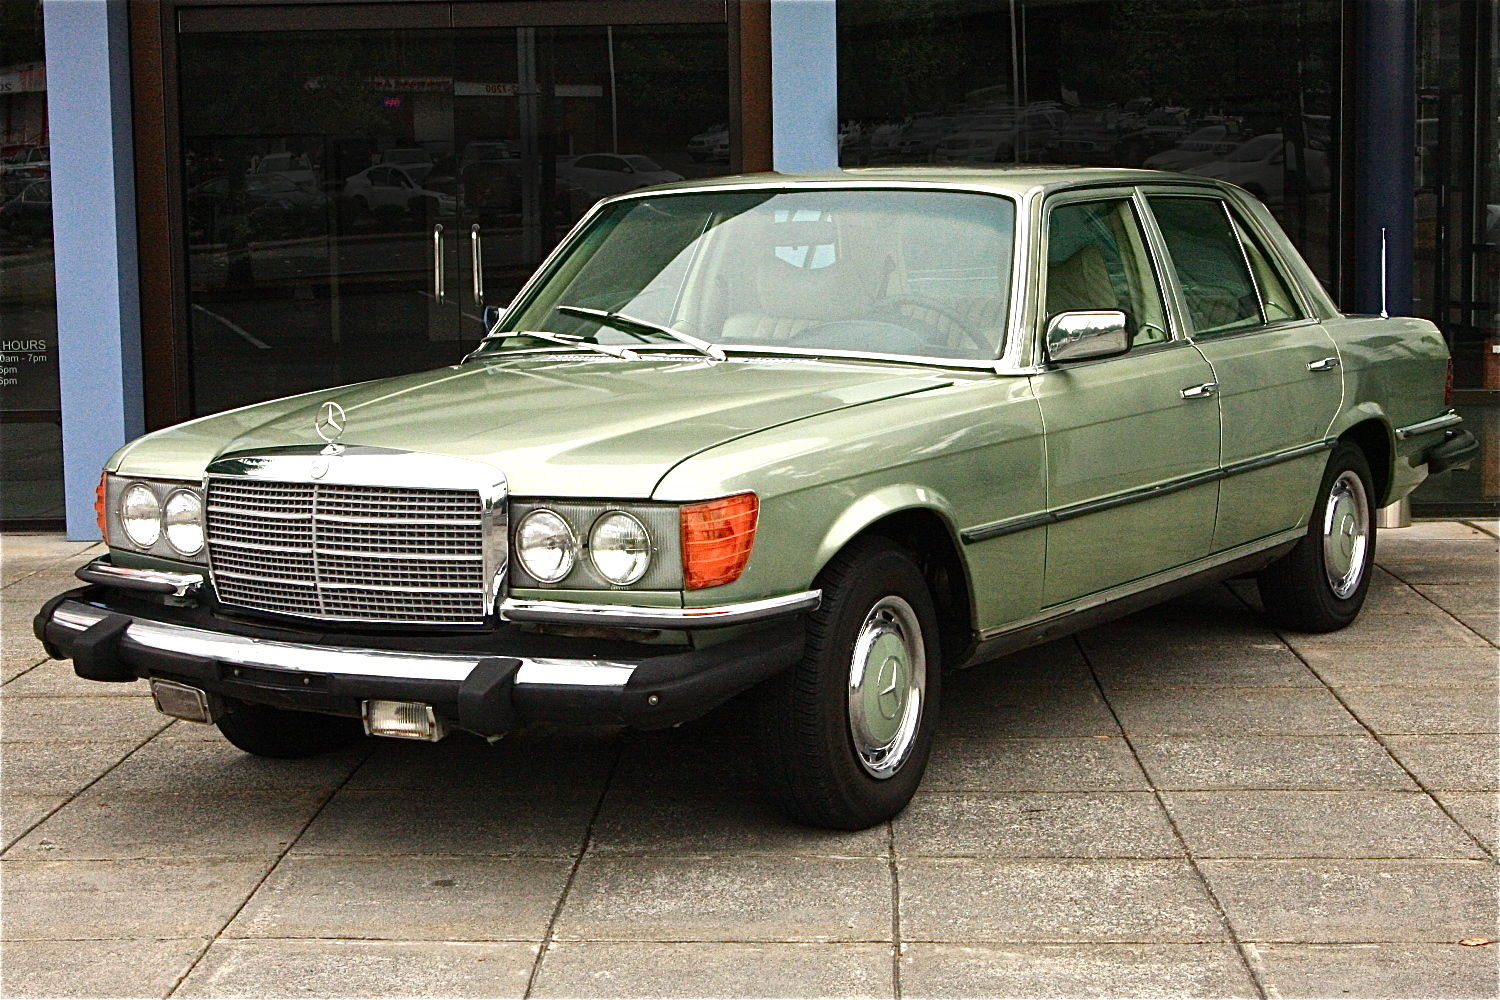 77 mercedes benz 280se green for sale in seattle for Mercedes benz for sale seattle